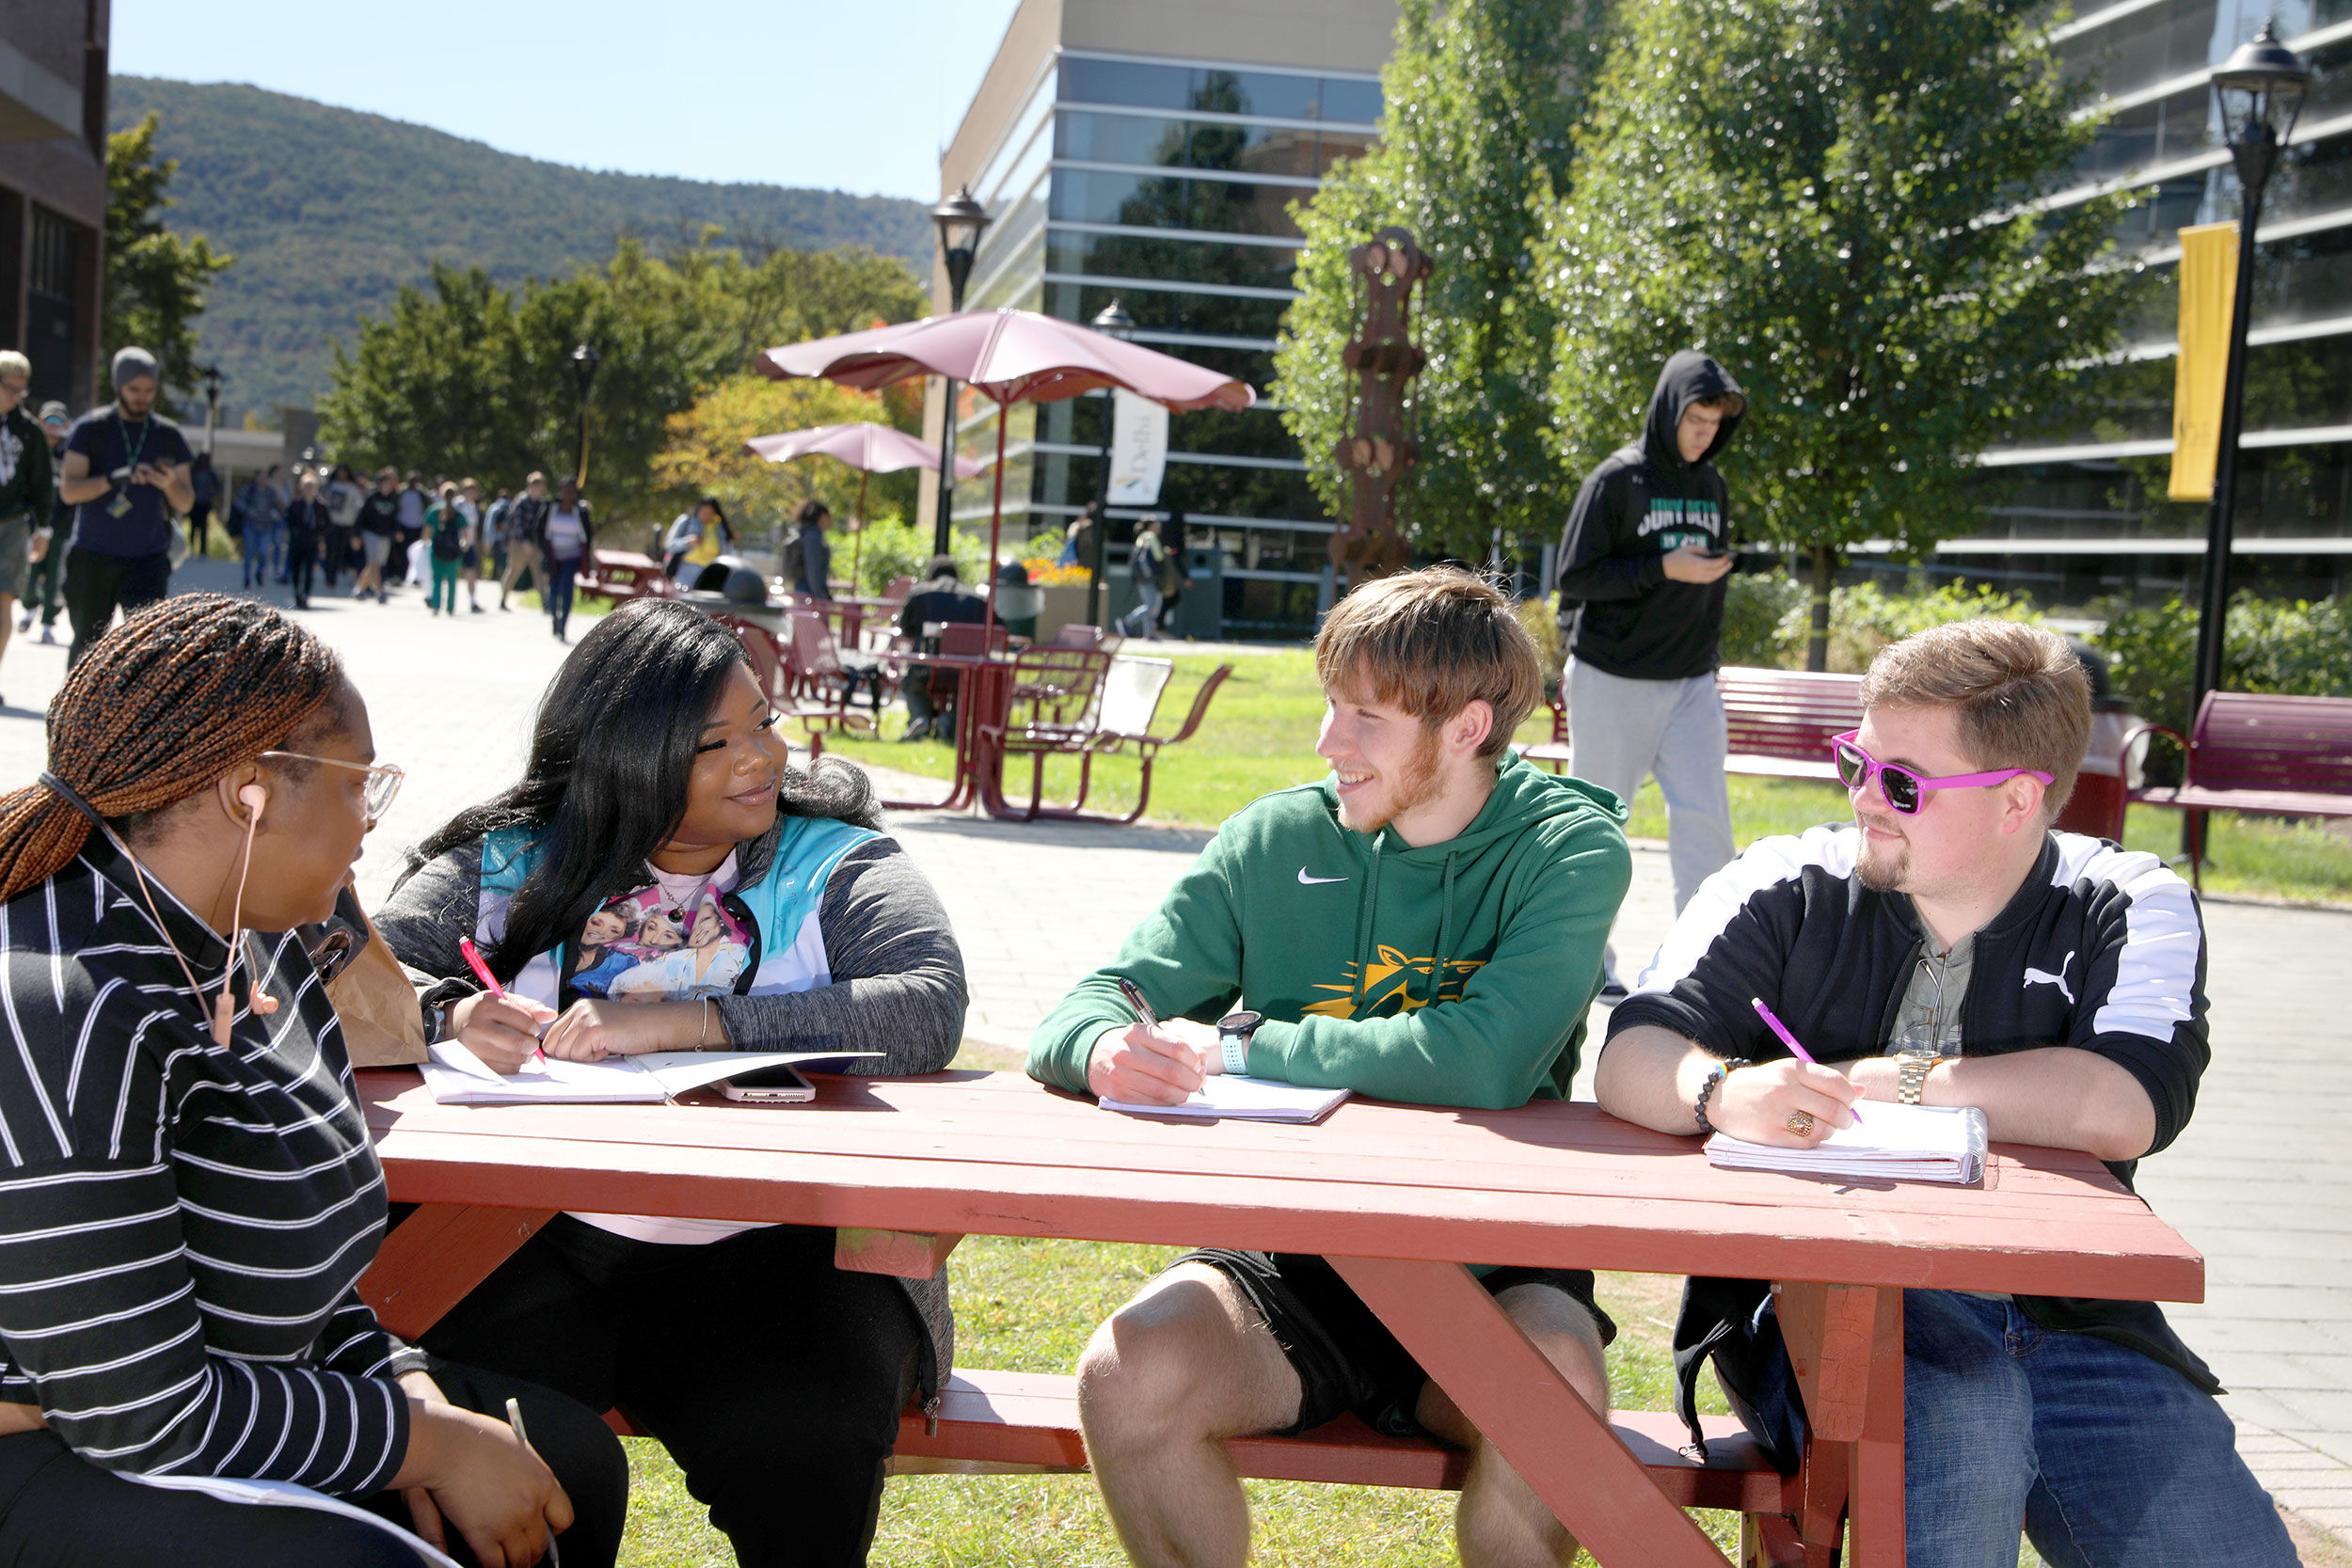 Students sitting at picnic table on campus